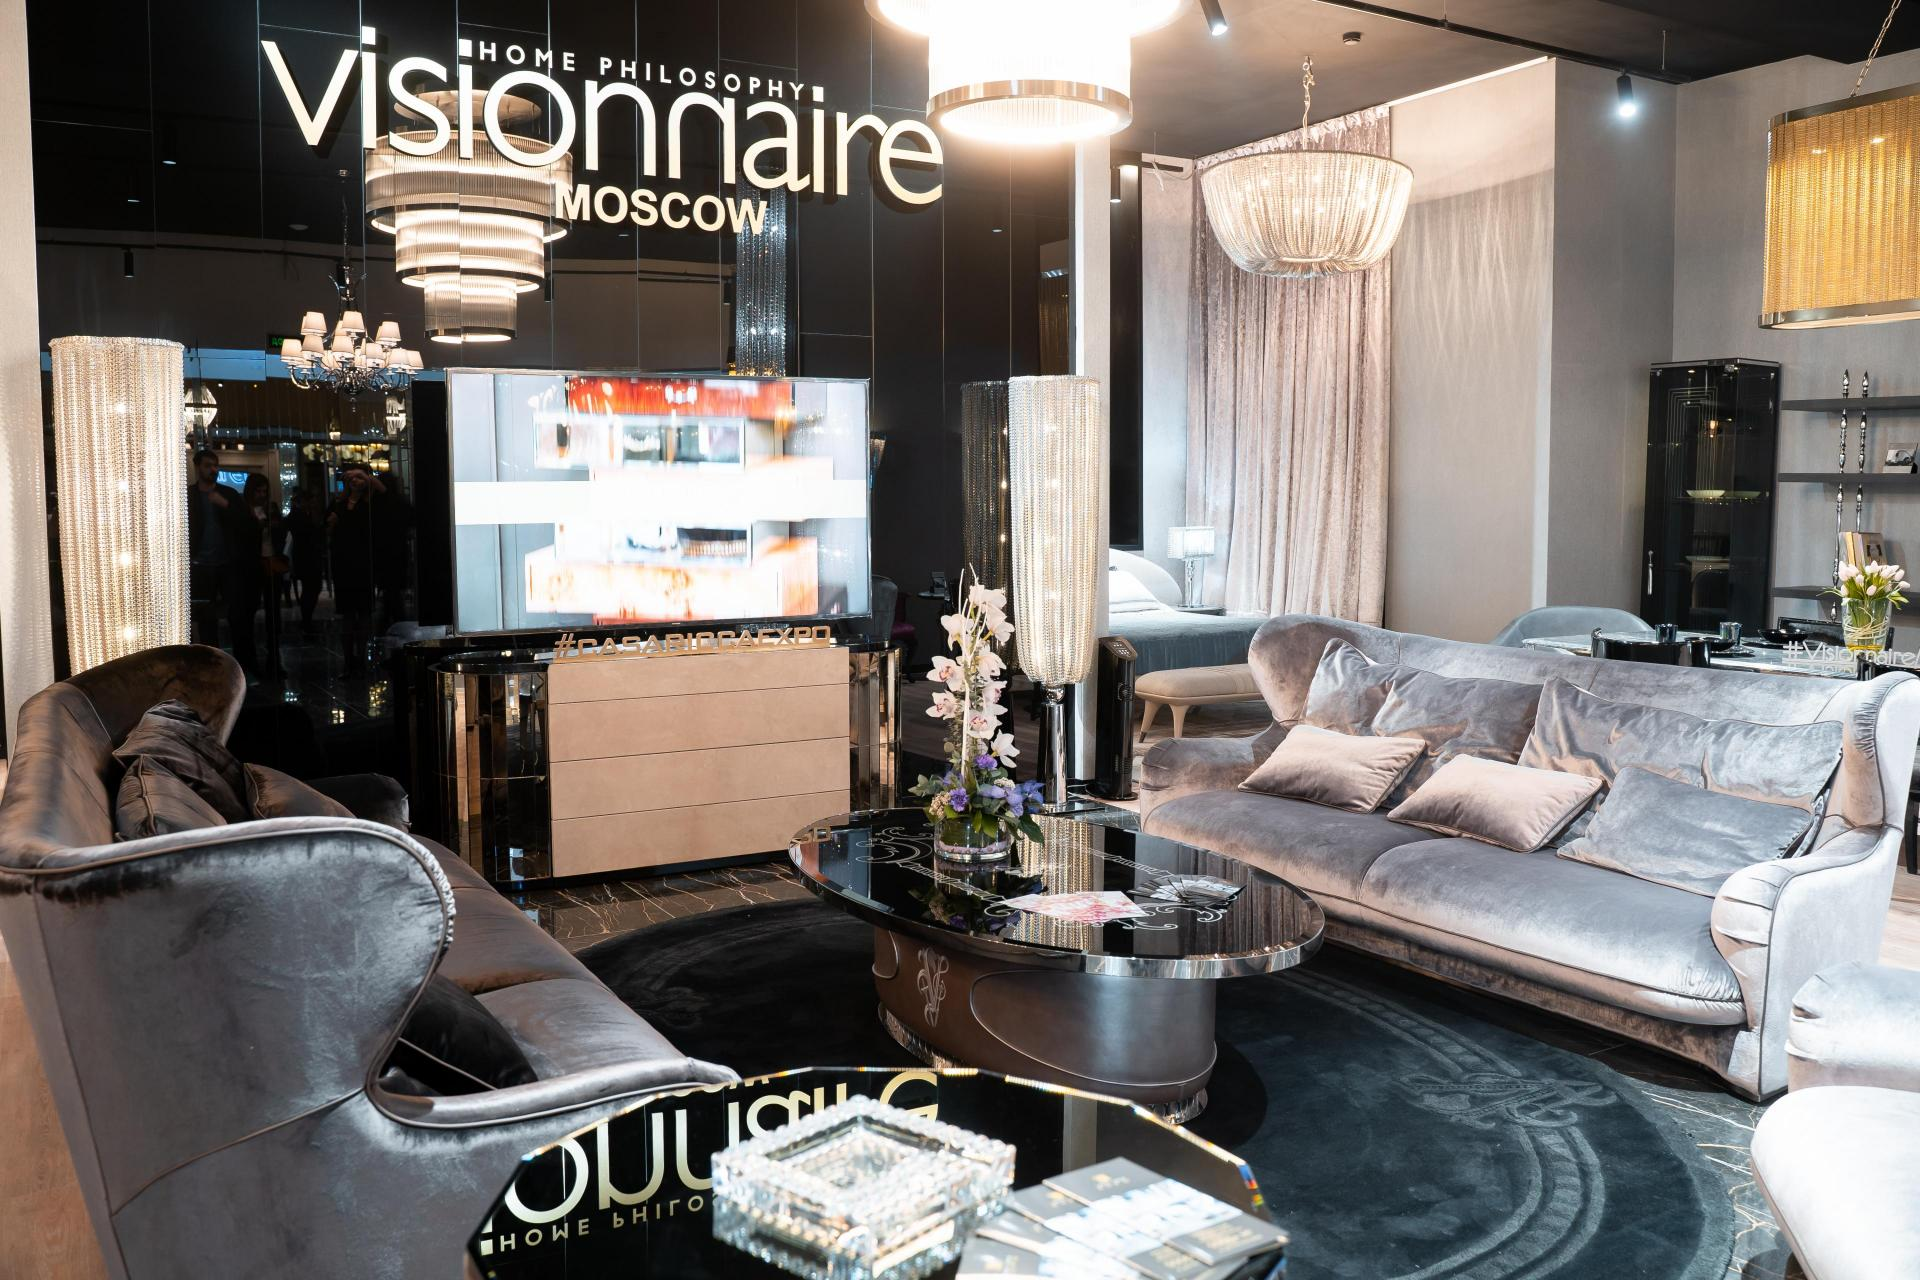 Visionnaire Moscow